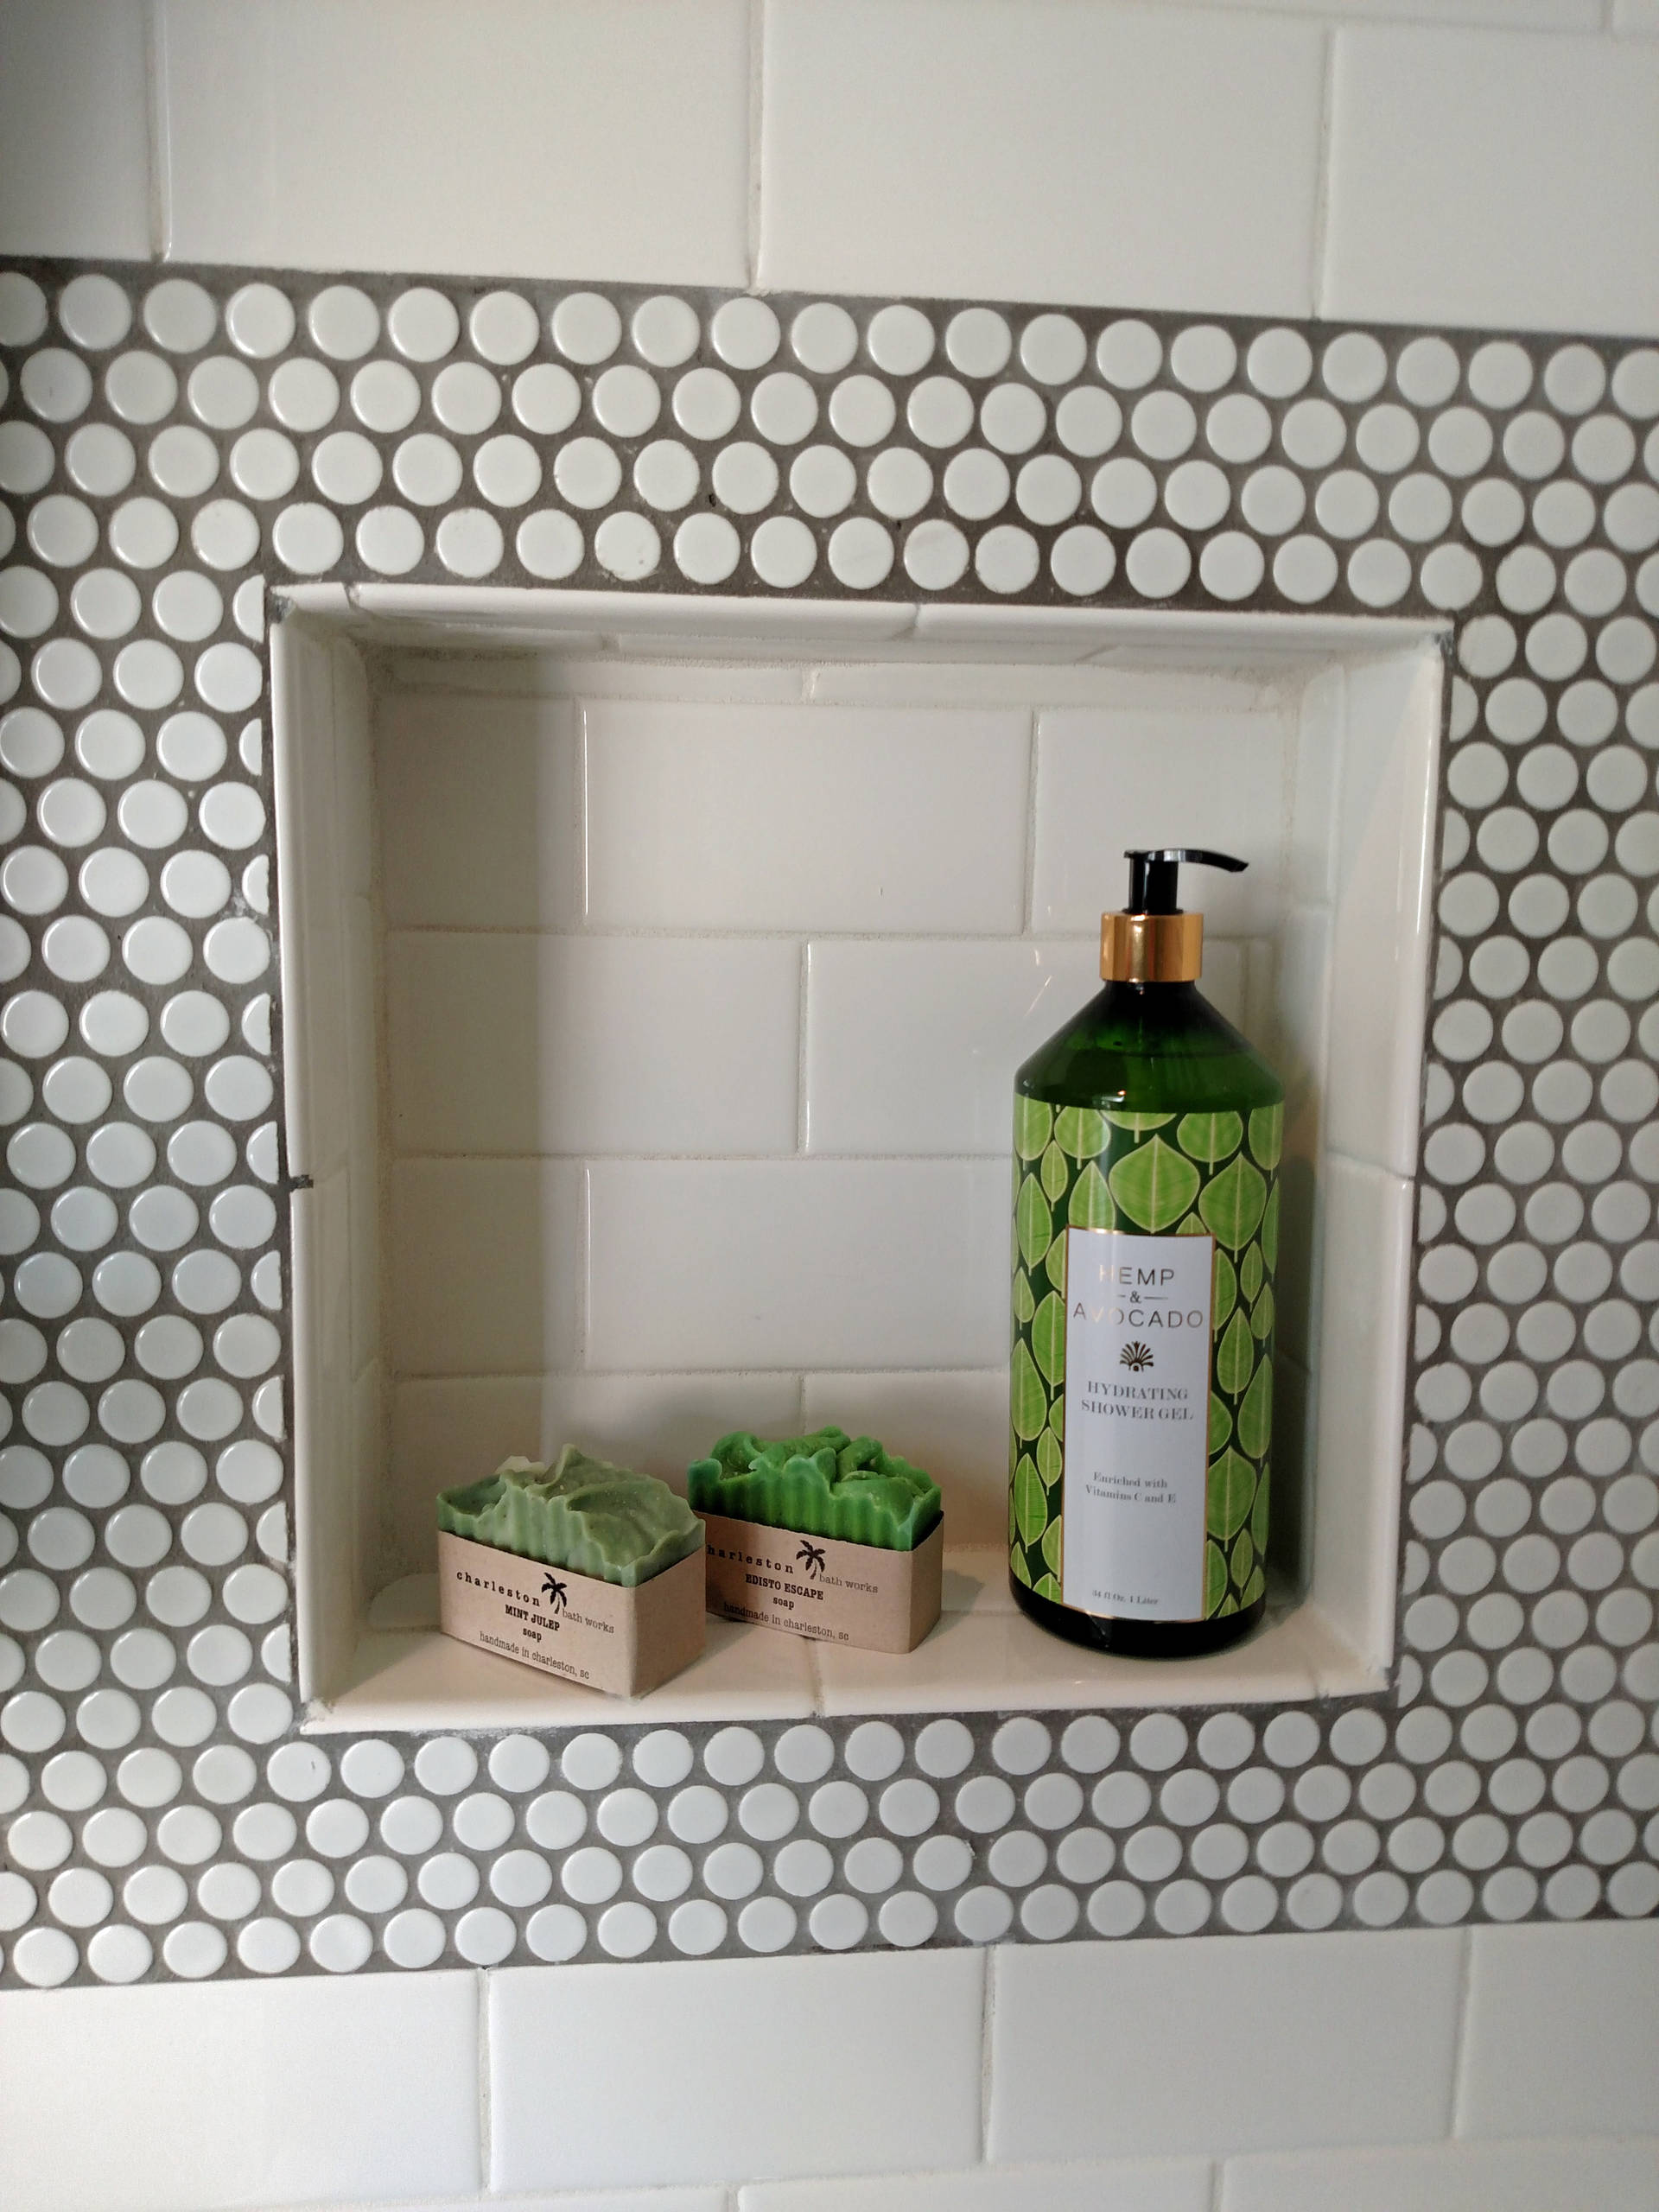 Subway tile with Penny tile accents and floor in a family bathroom.